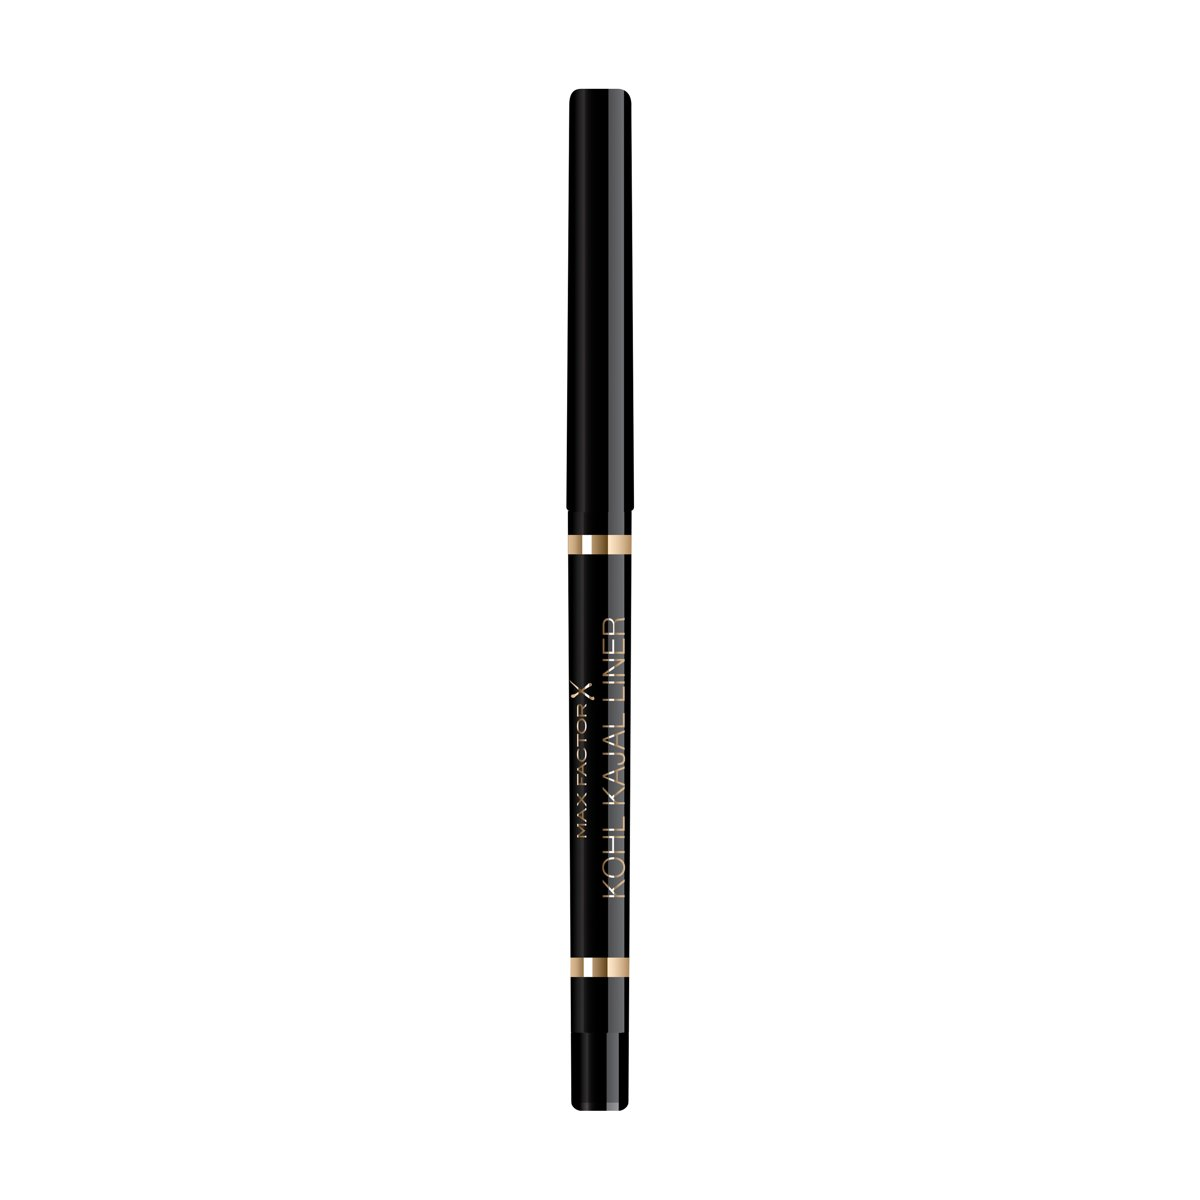 Max Factor Kohl Kajal Automatic Pencil Oogpotlood - 001 Black